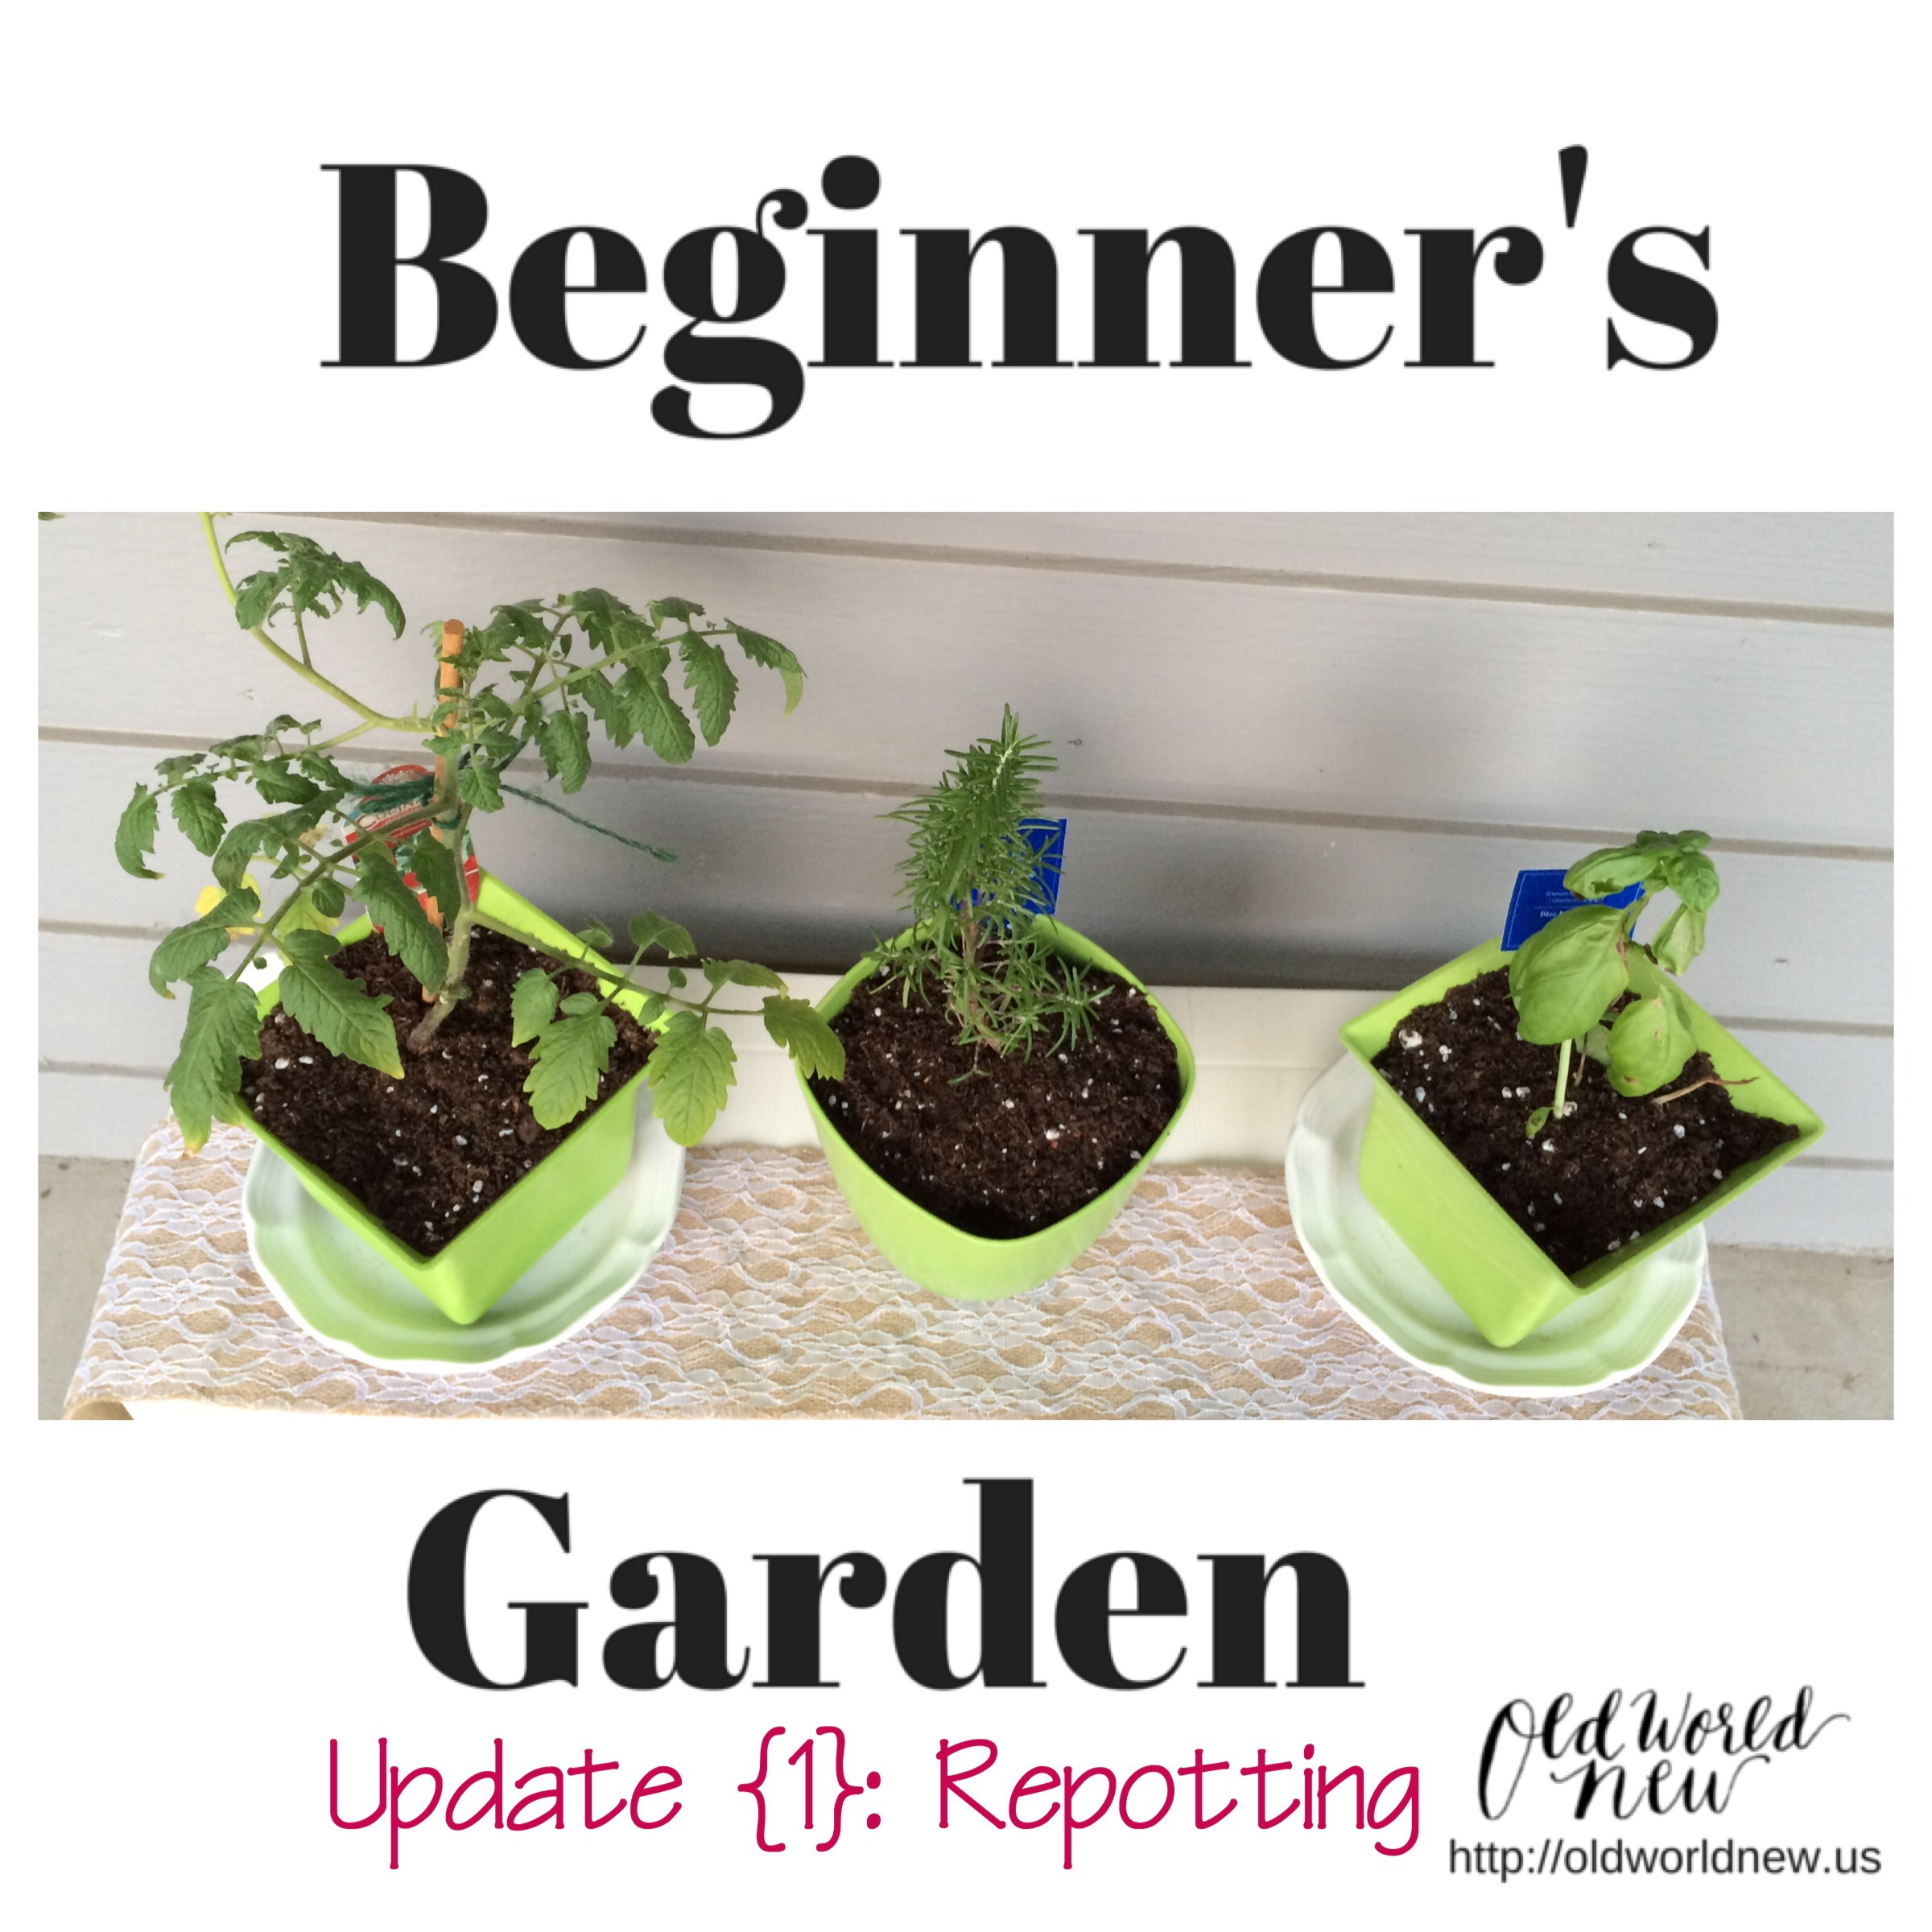 Beginner's Garden Update {1}: Repotting Growing Plants